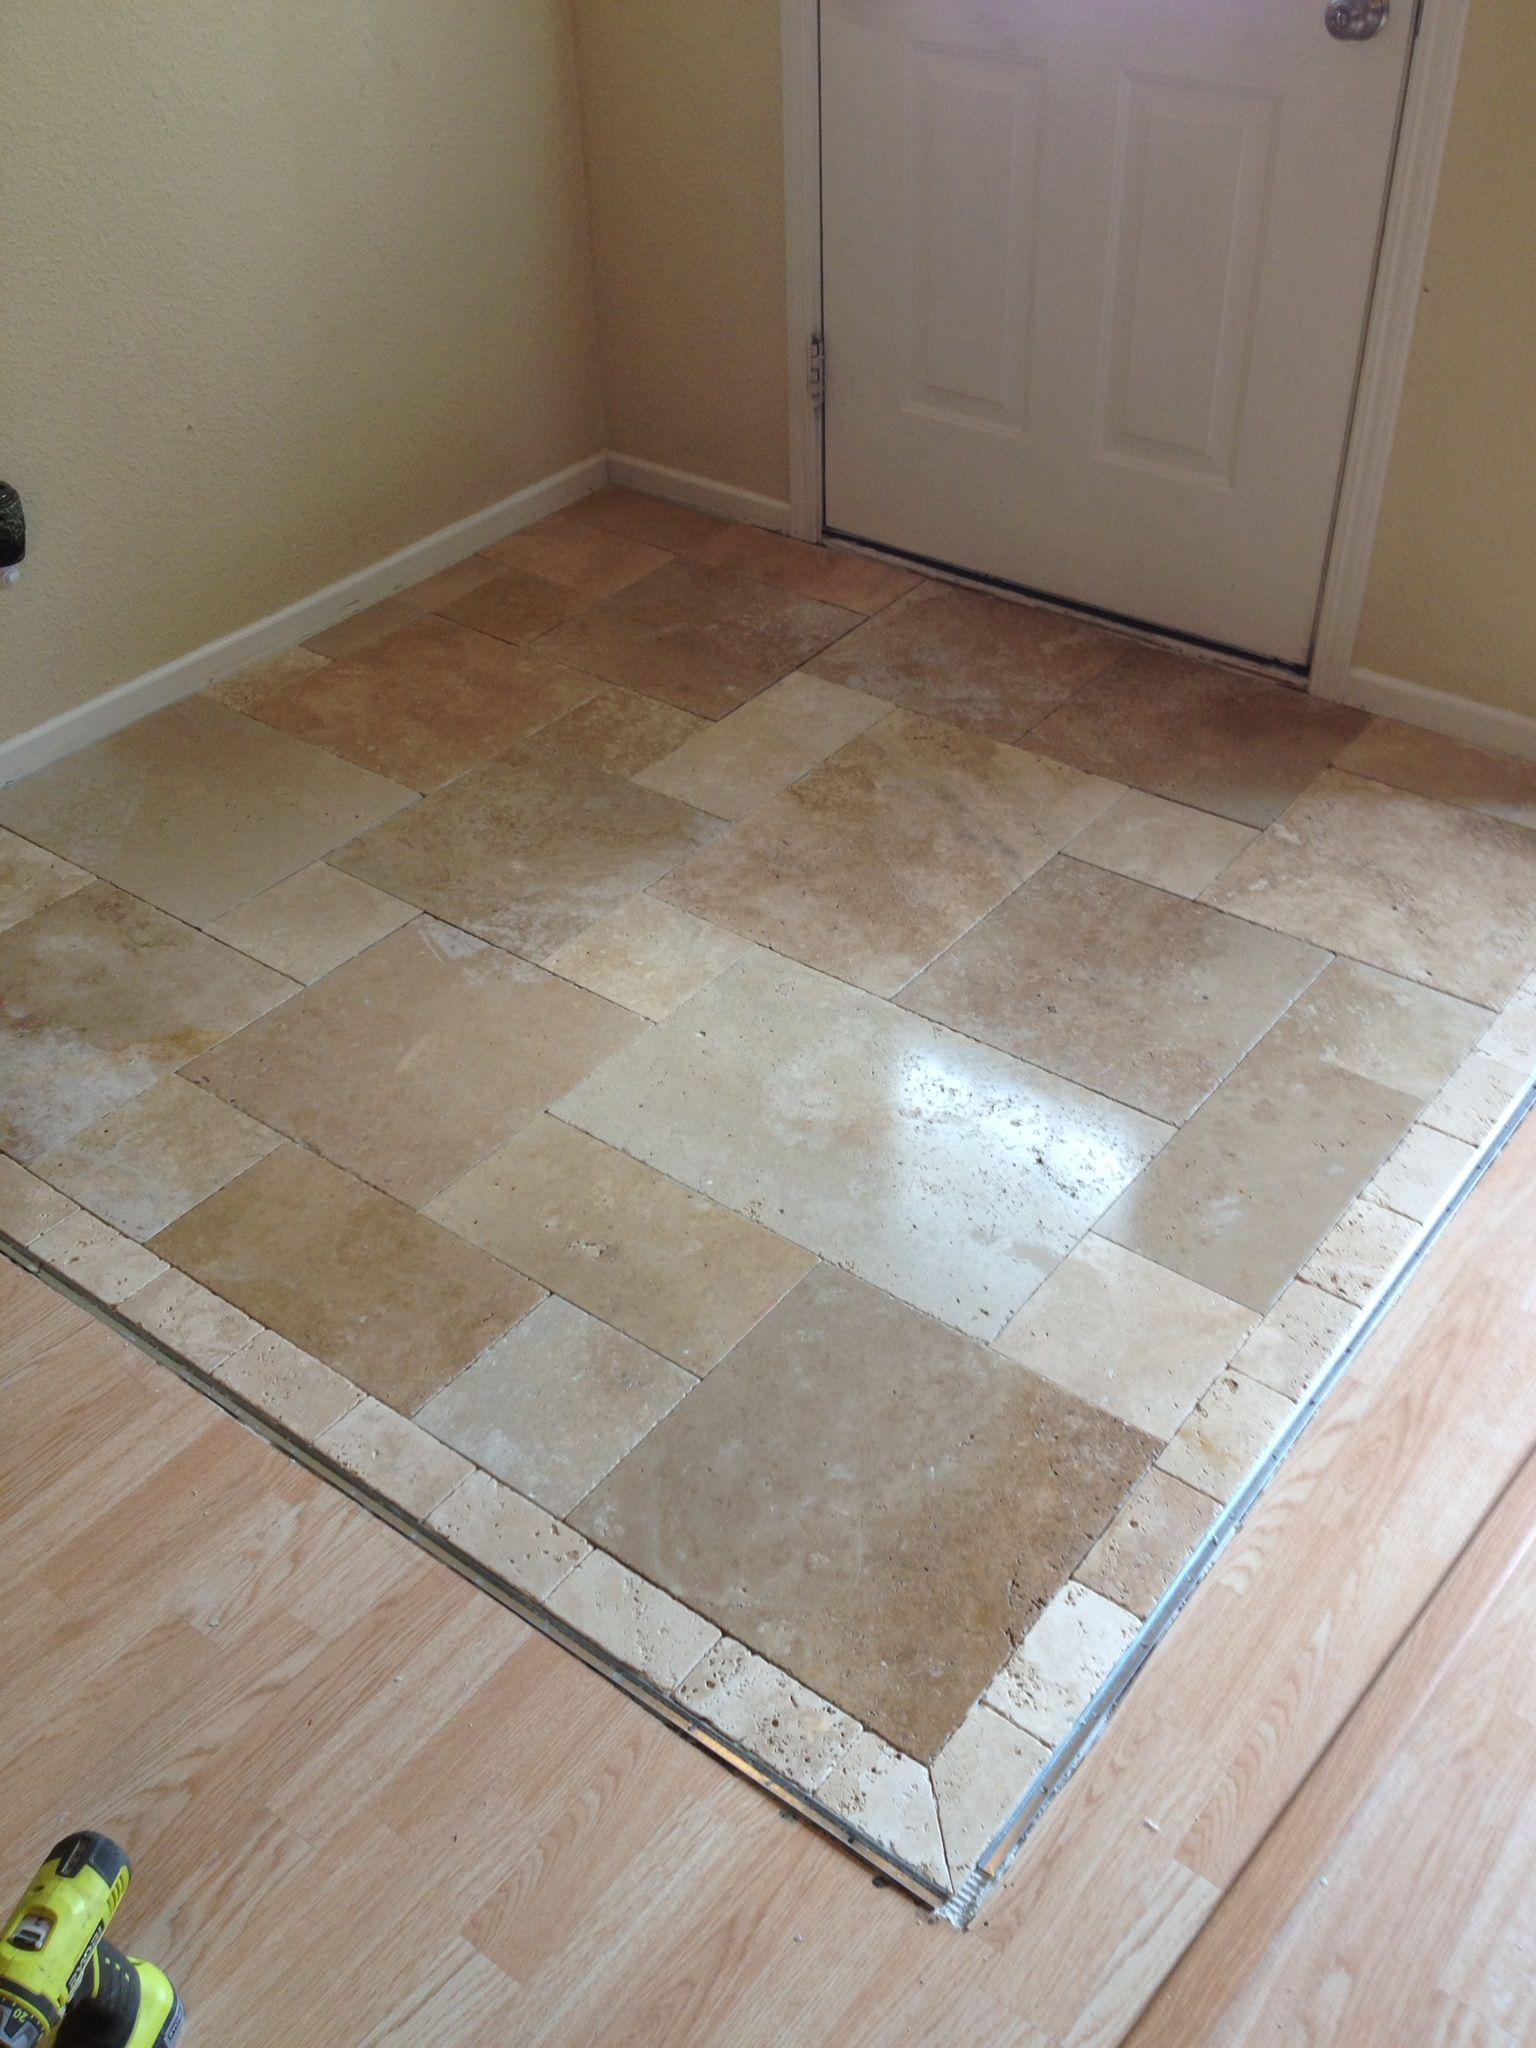 Walnut travertine tile entrance my projects pinterest walnut travertine tile entrance dailygadgetfo Image collections